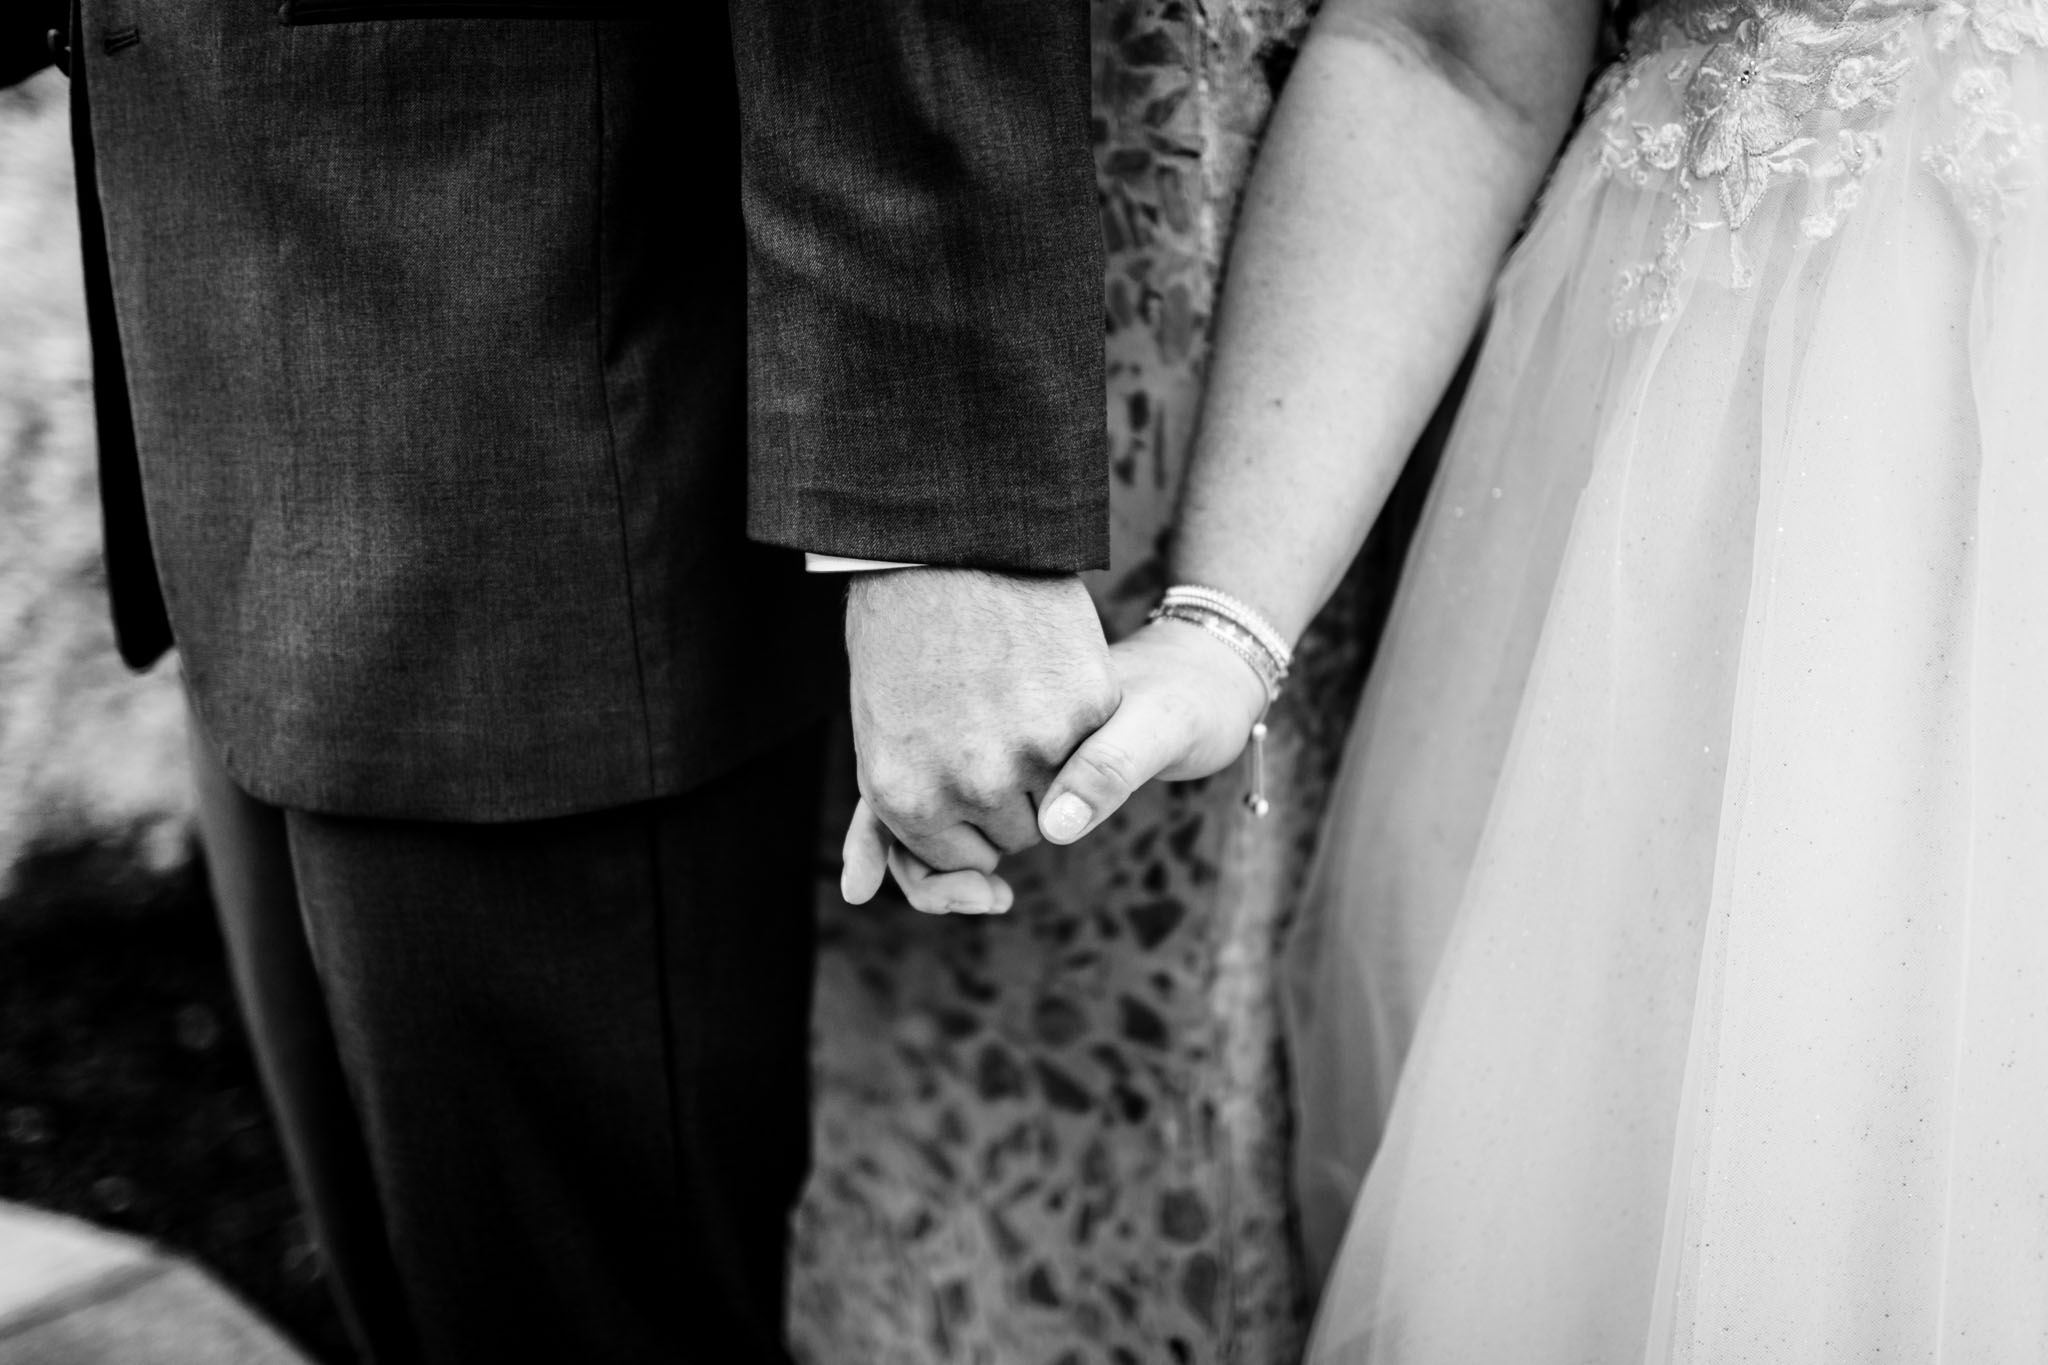 Haw River Ballroom Wedding | Durham Photographer | By G. Lin Photography | Black and white photo of bride and groom holding hands